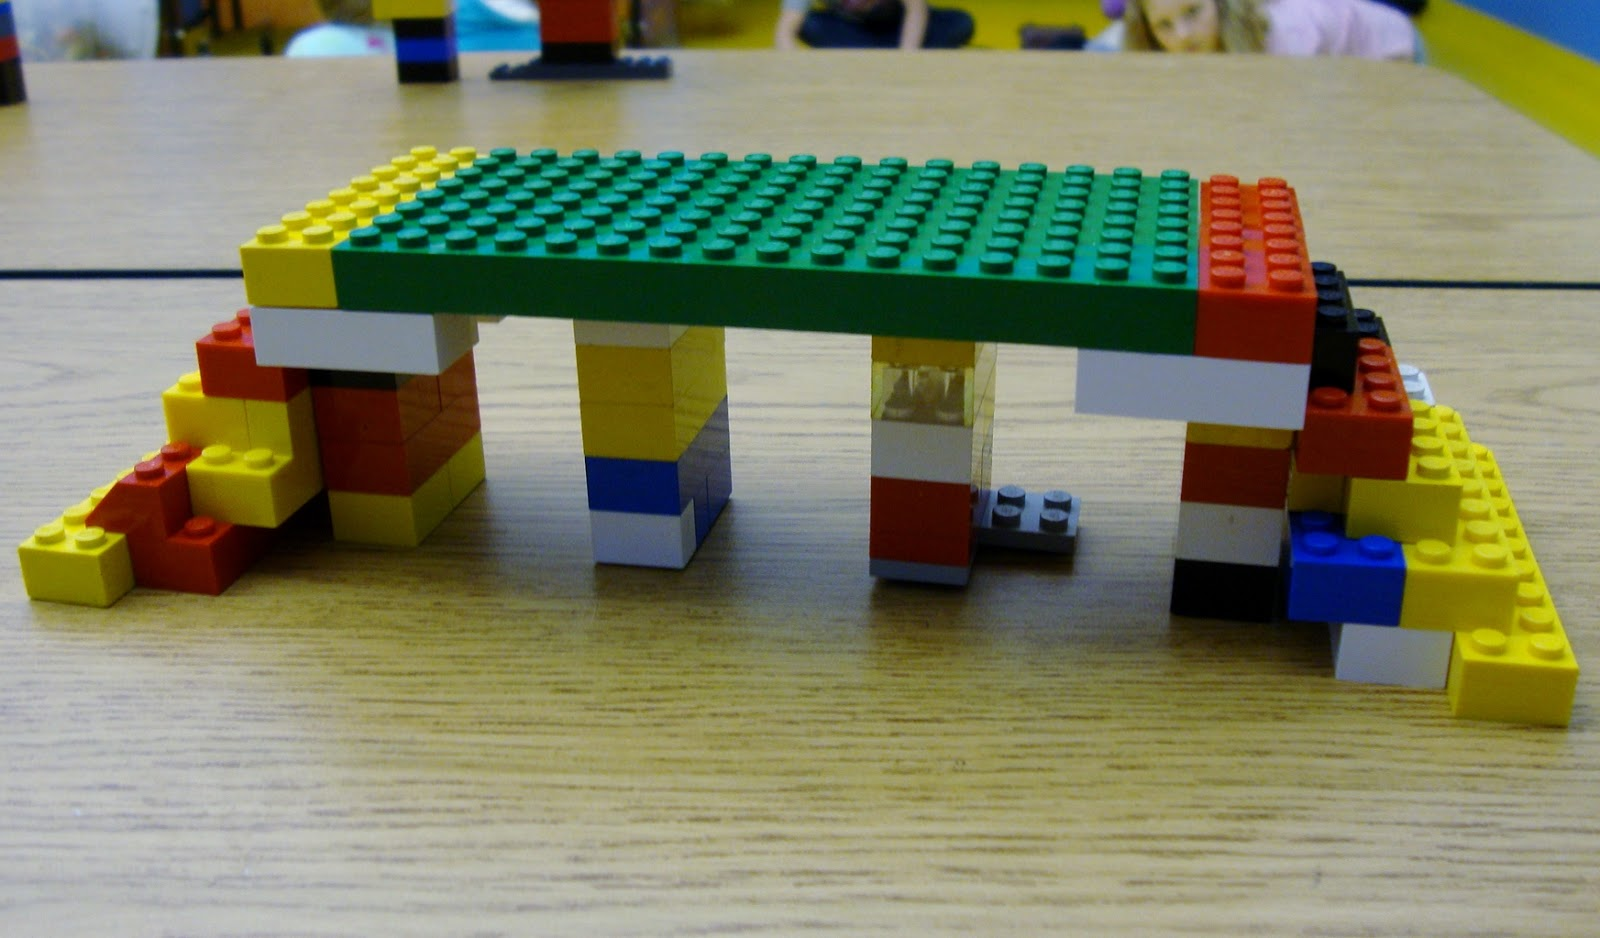 Lego bridges miss michelle mpl fun and learning the library